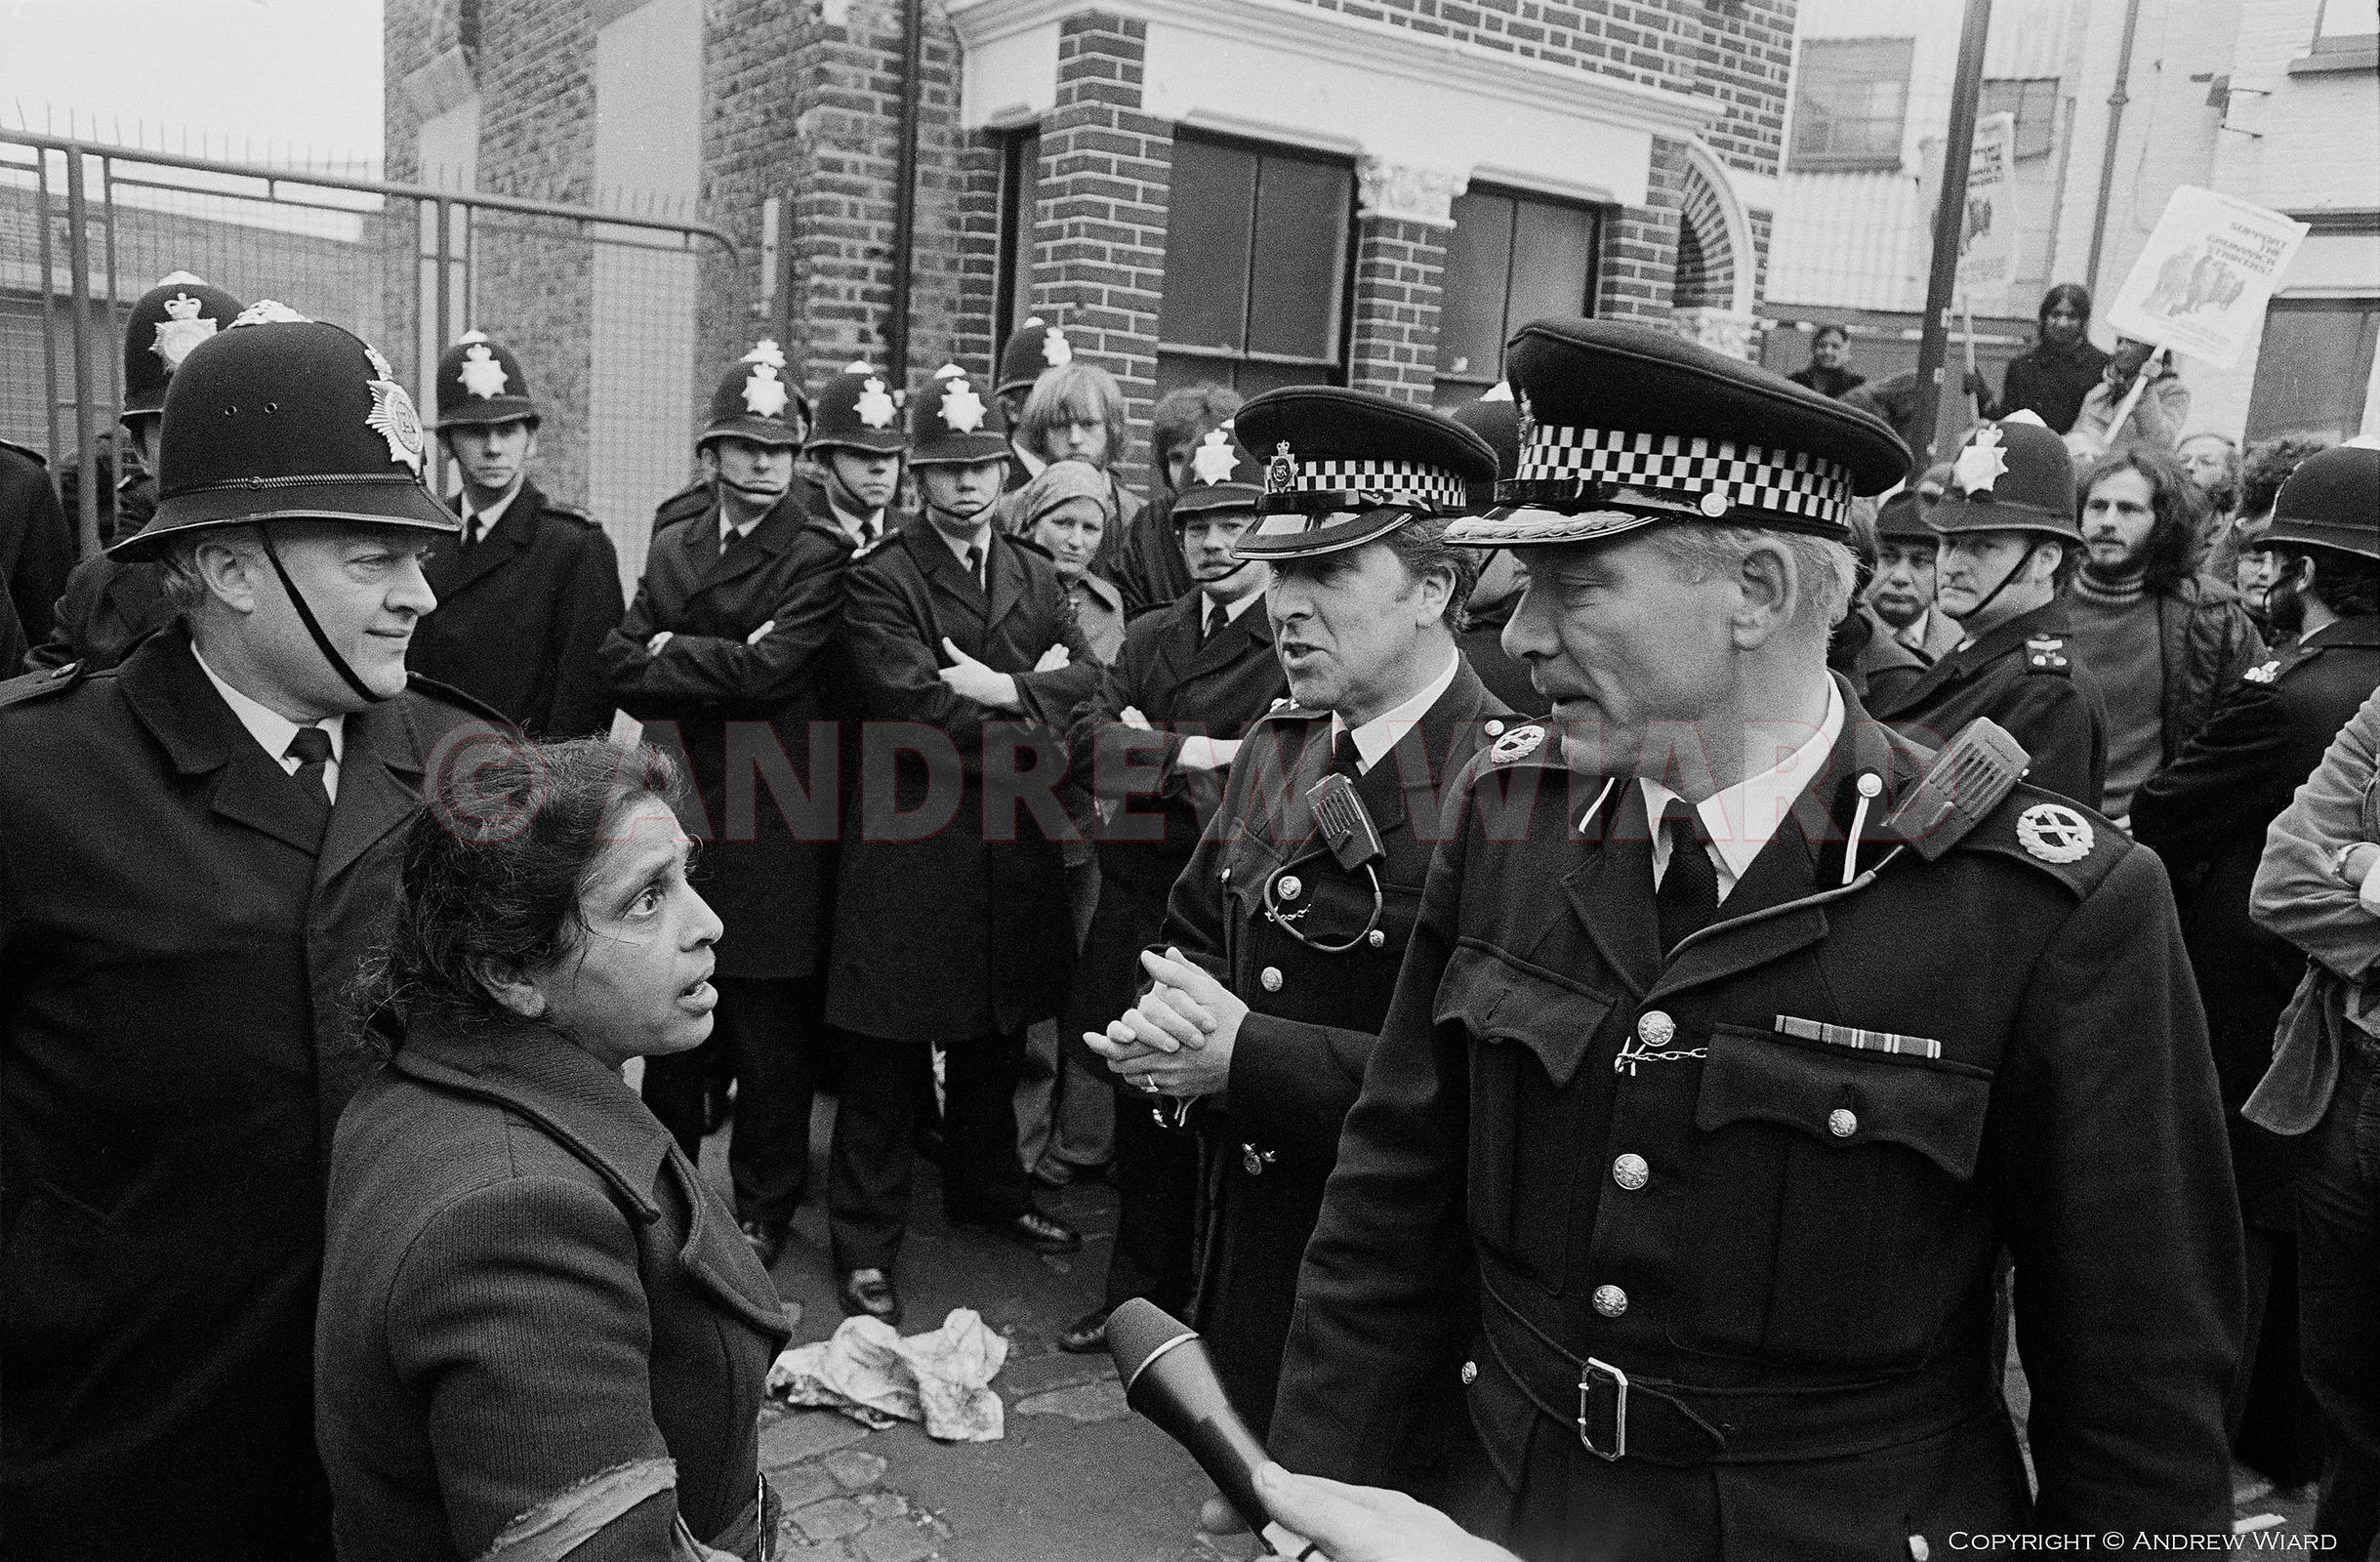 Mrs.Desai, leader of the Grunwick strike by mainly asian women over low pay and recognition rights, here on the first day of ...